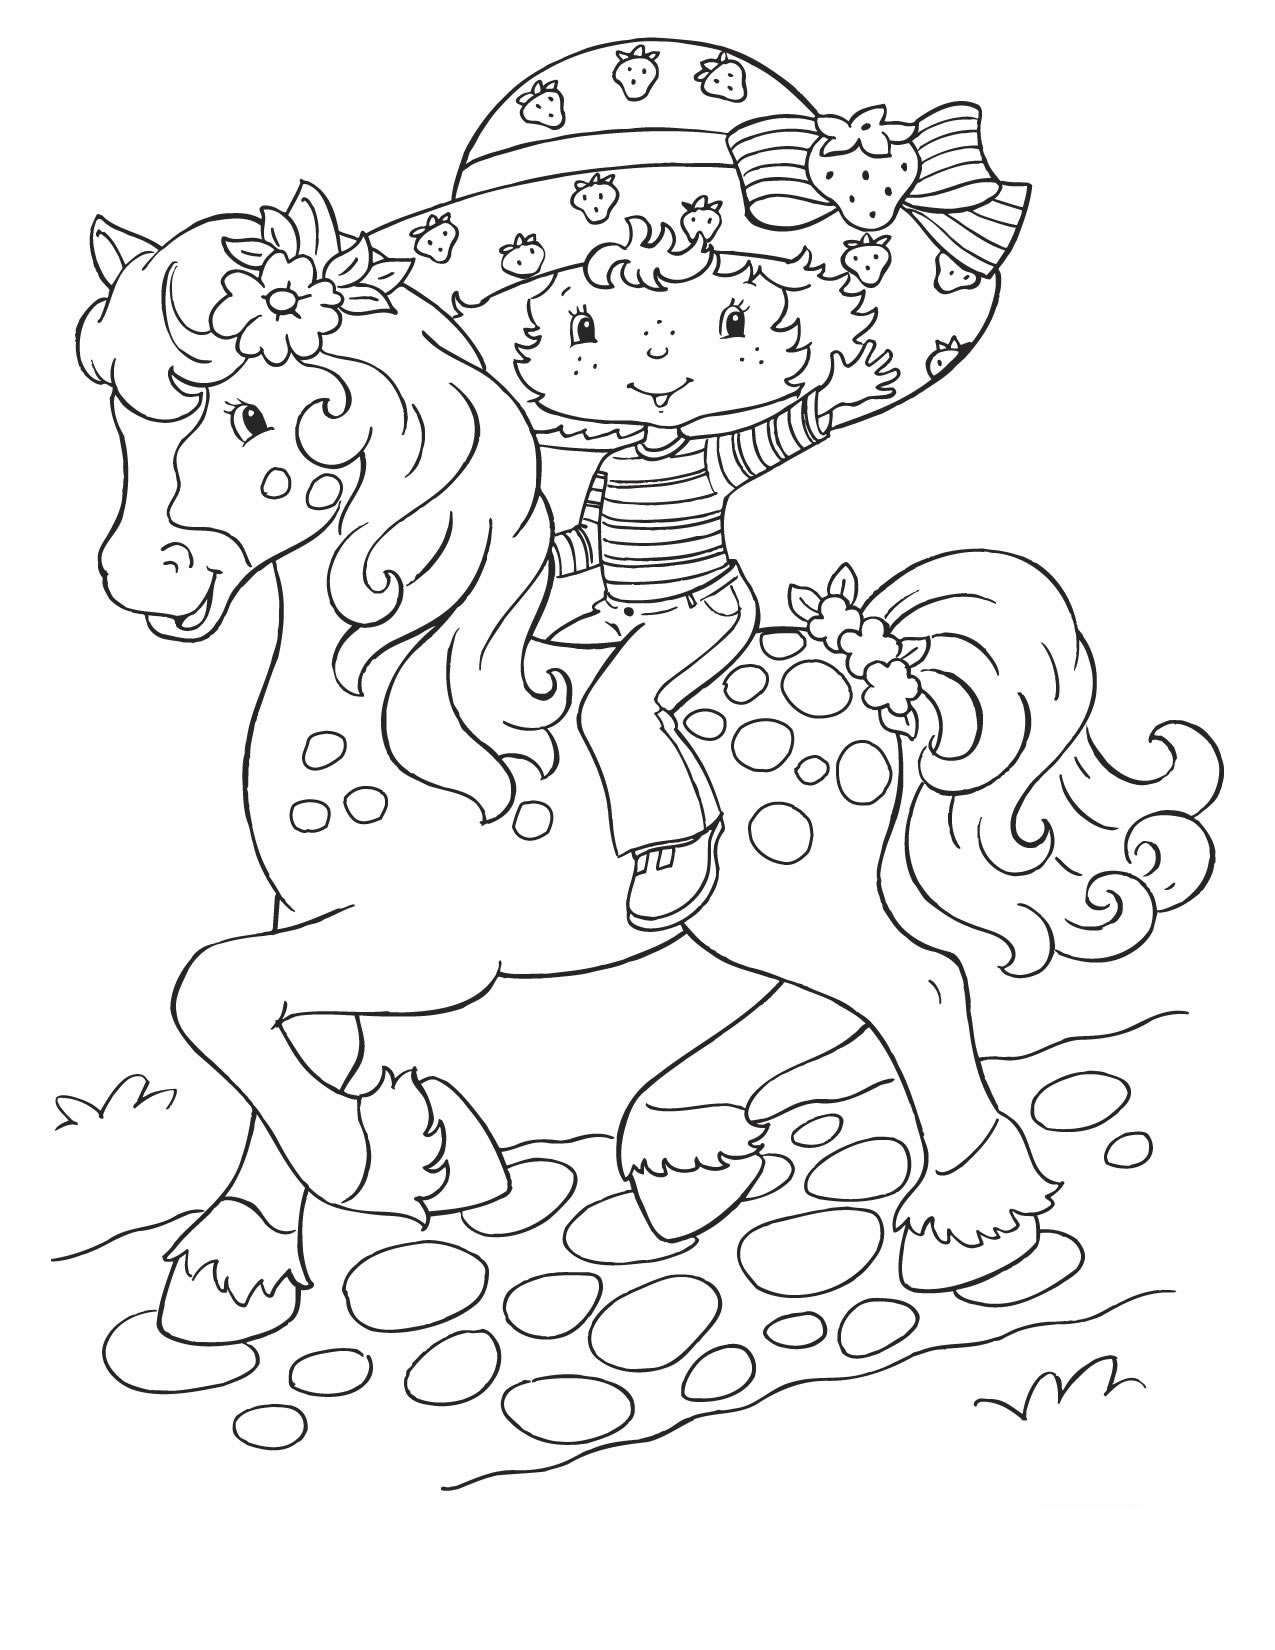 Uncategorized Coloring Strawberry Shortcake free printable strawberry shortcake coloring pages for kids pages